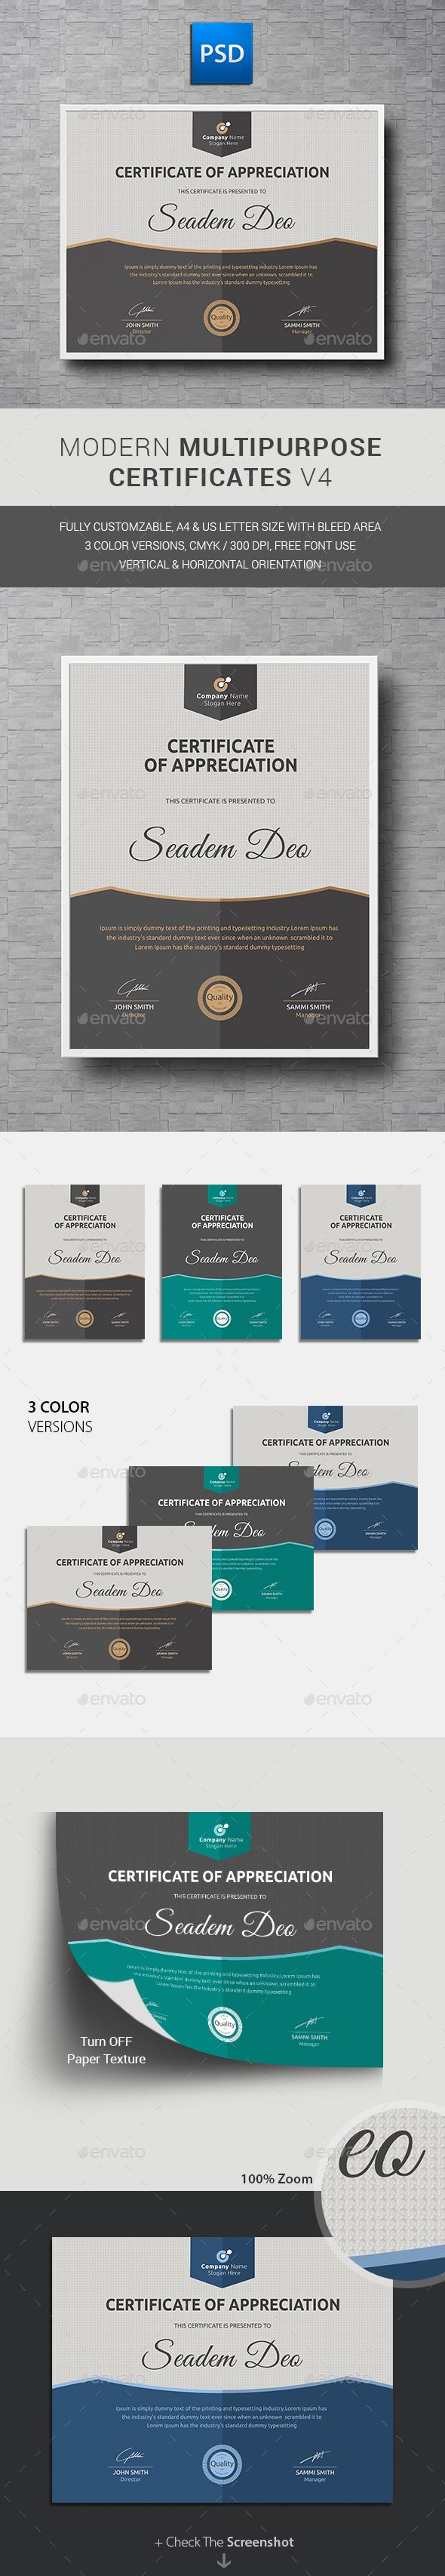 21 best modern certificate design images on pinterest gardens certificate yelopaper